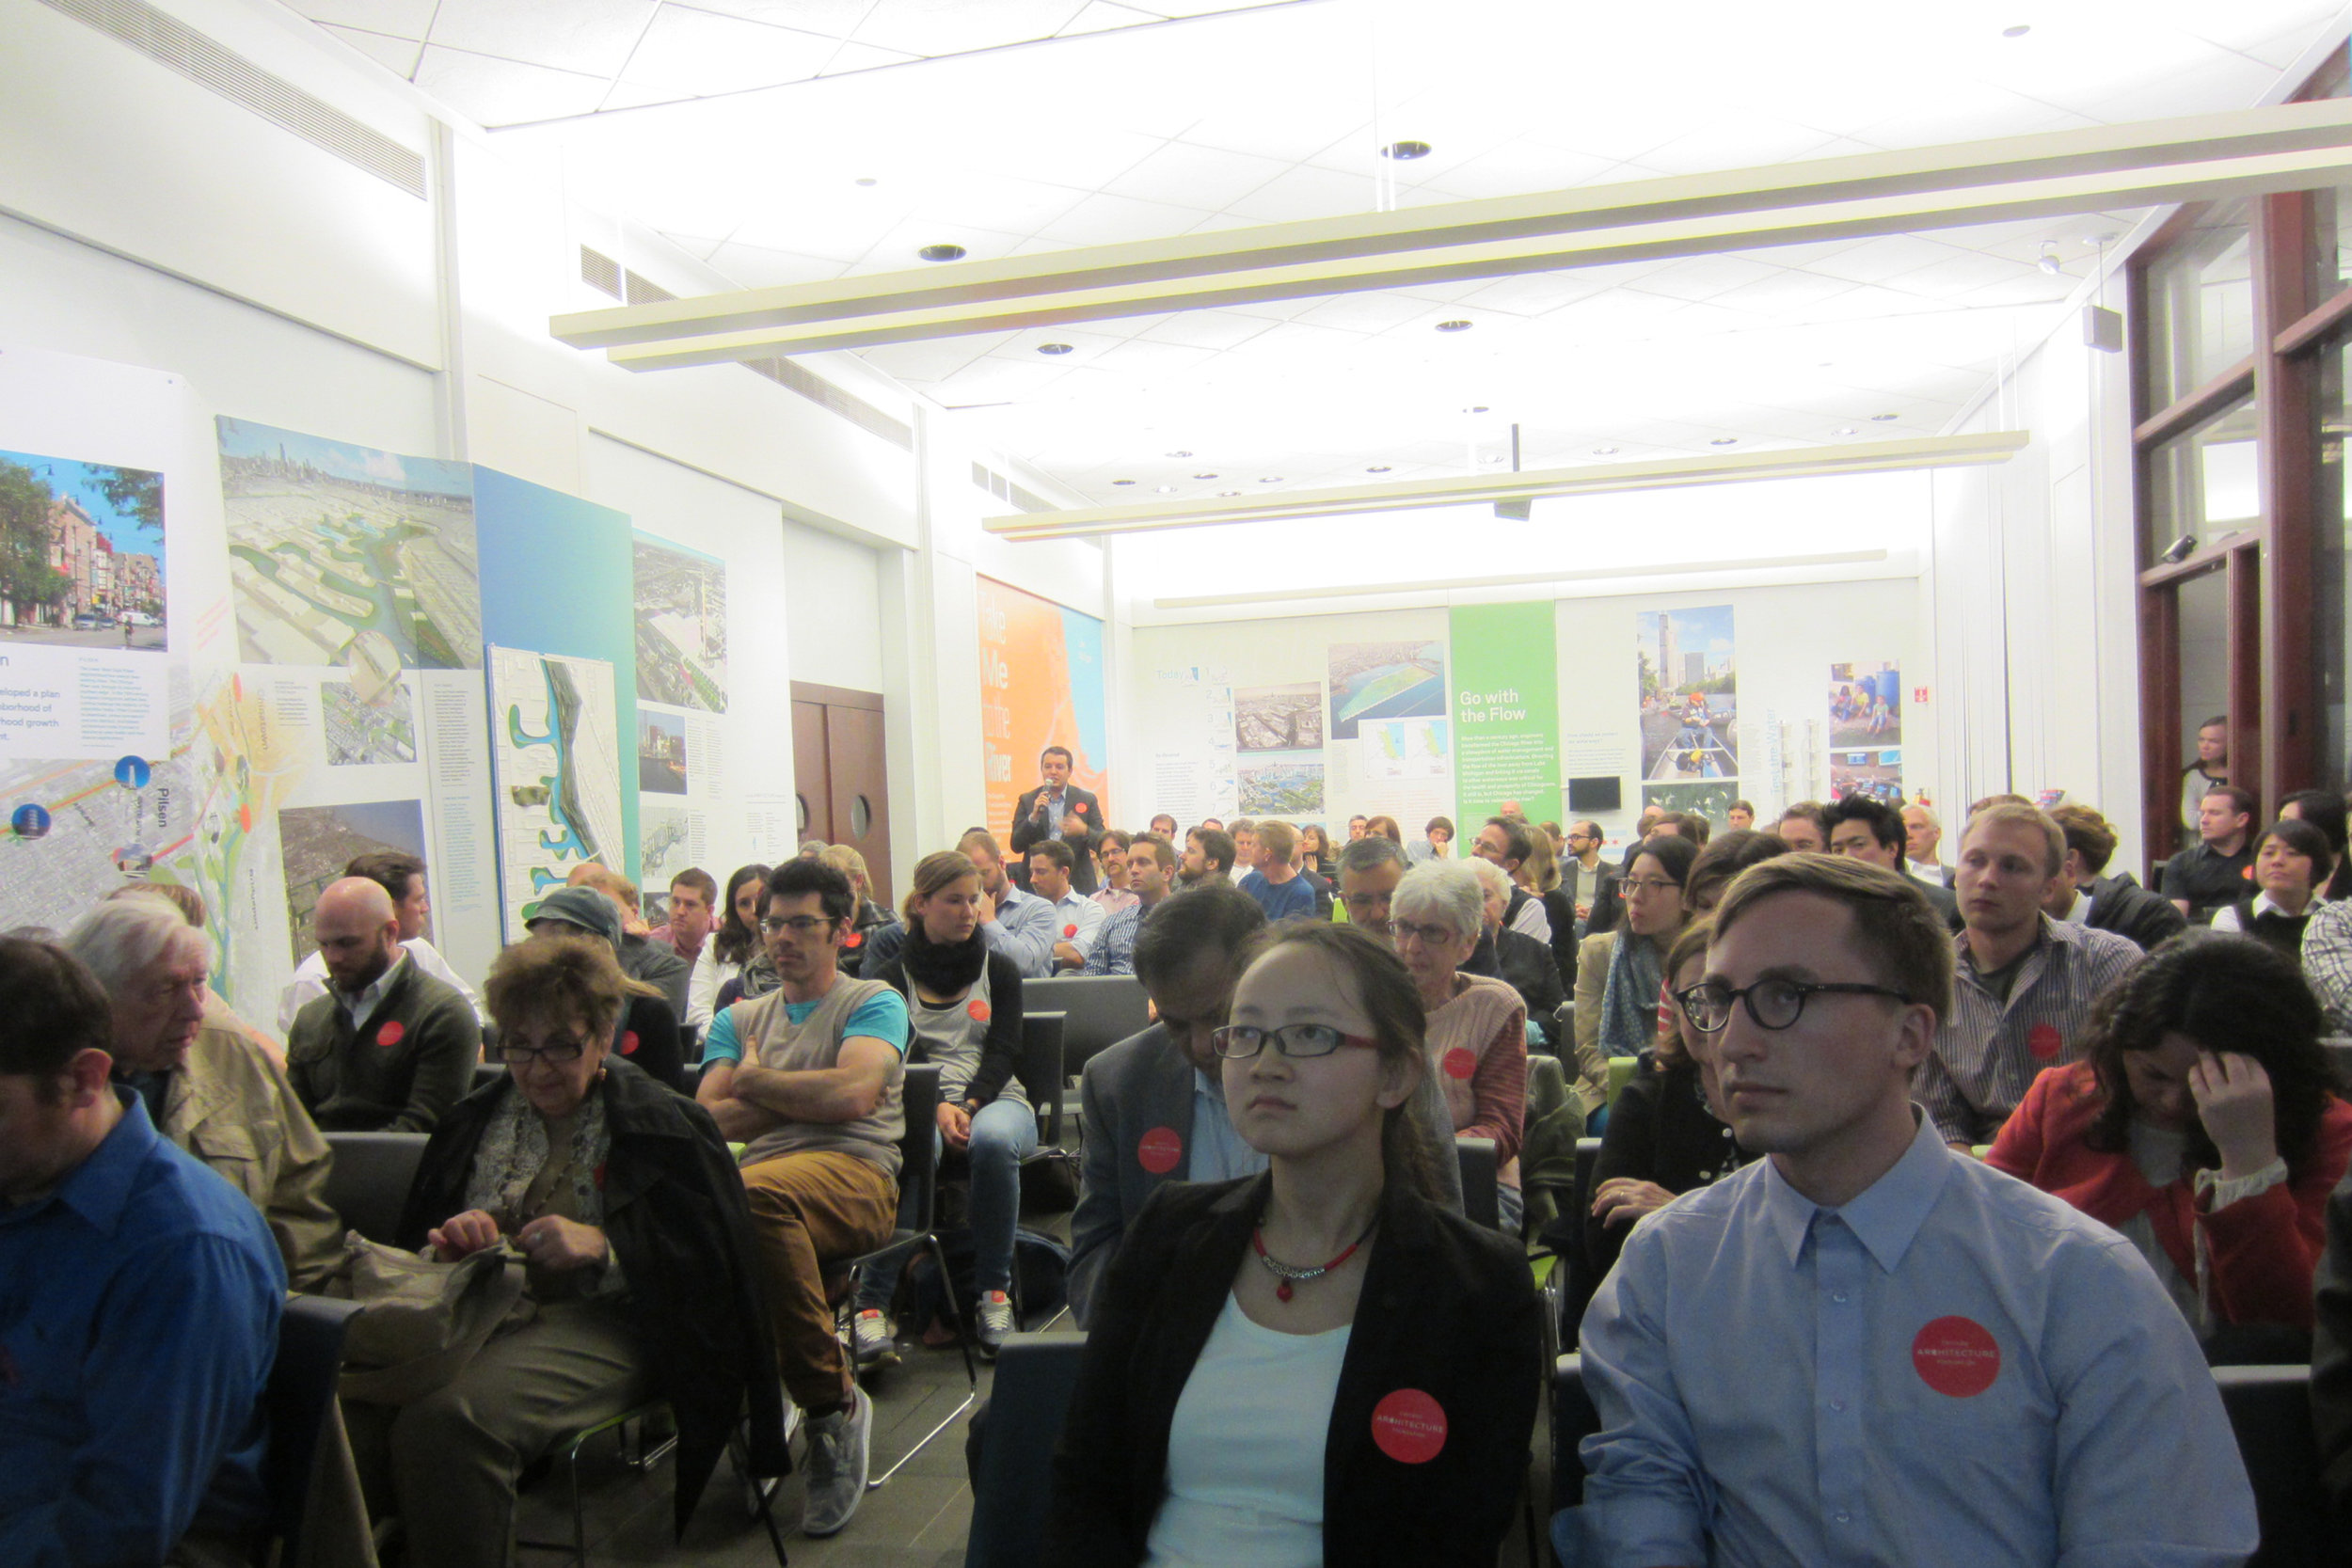 Strawn_and_Sierralta_about-cac_event.jpg